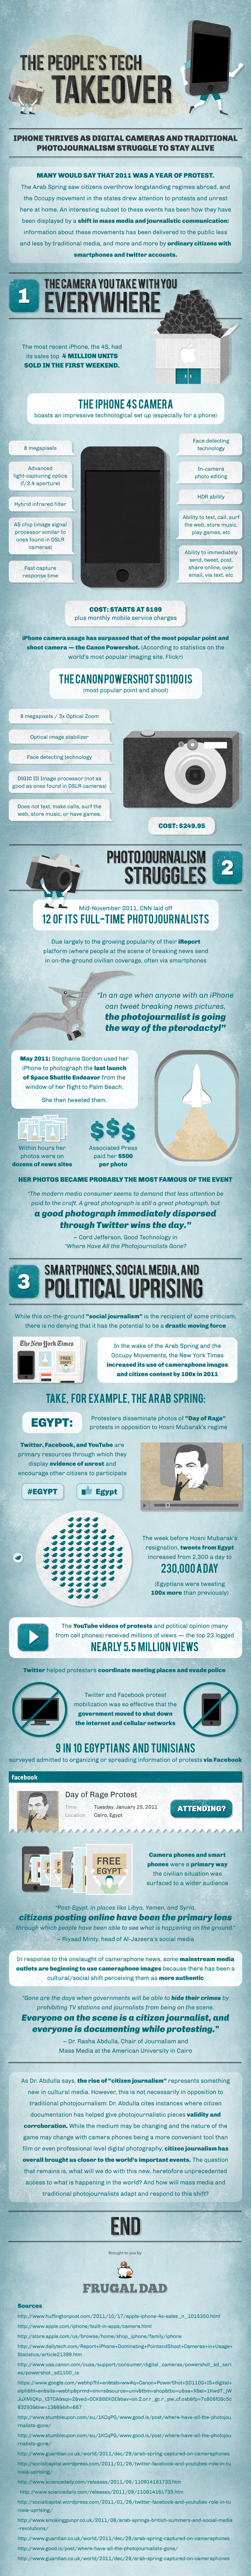 iphone Photojournalism-infographic